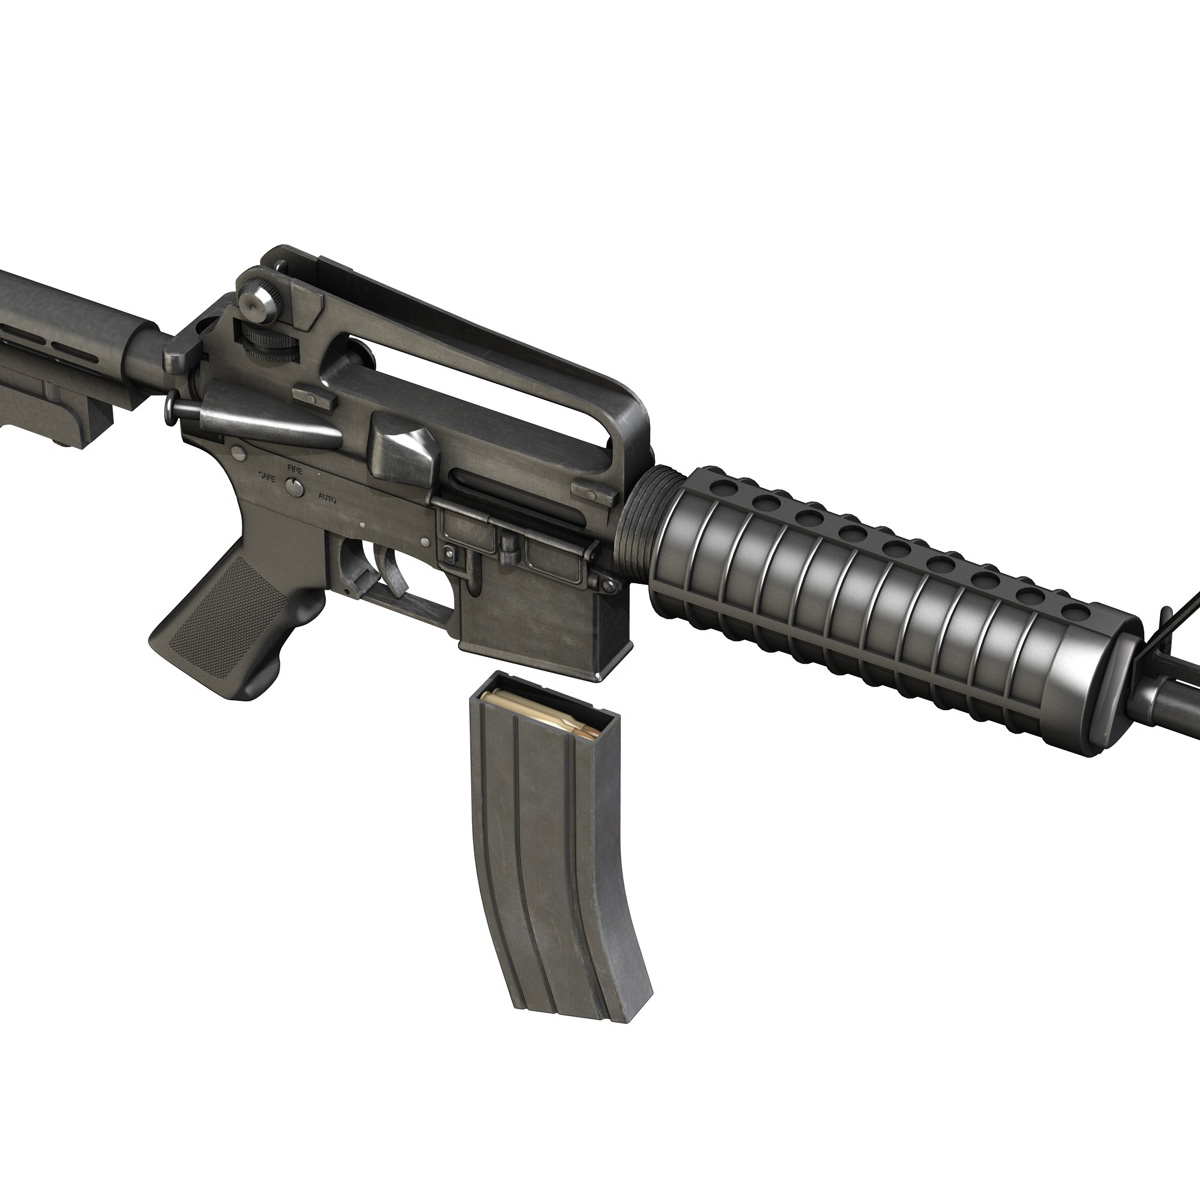 Colt M4 Commando Assault Rifle 3D Model